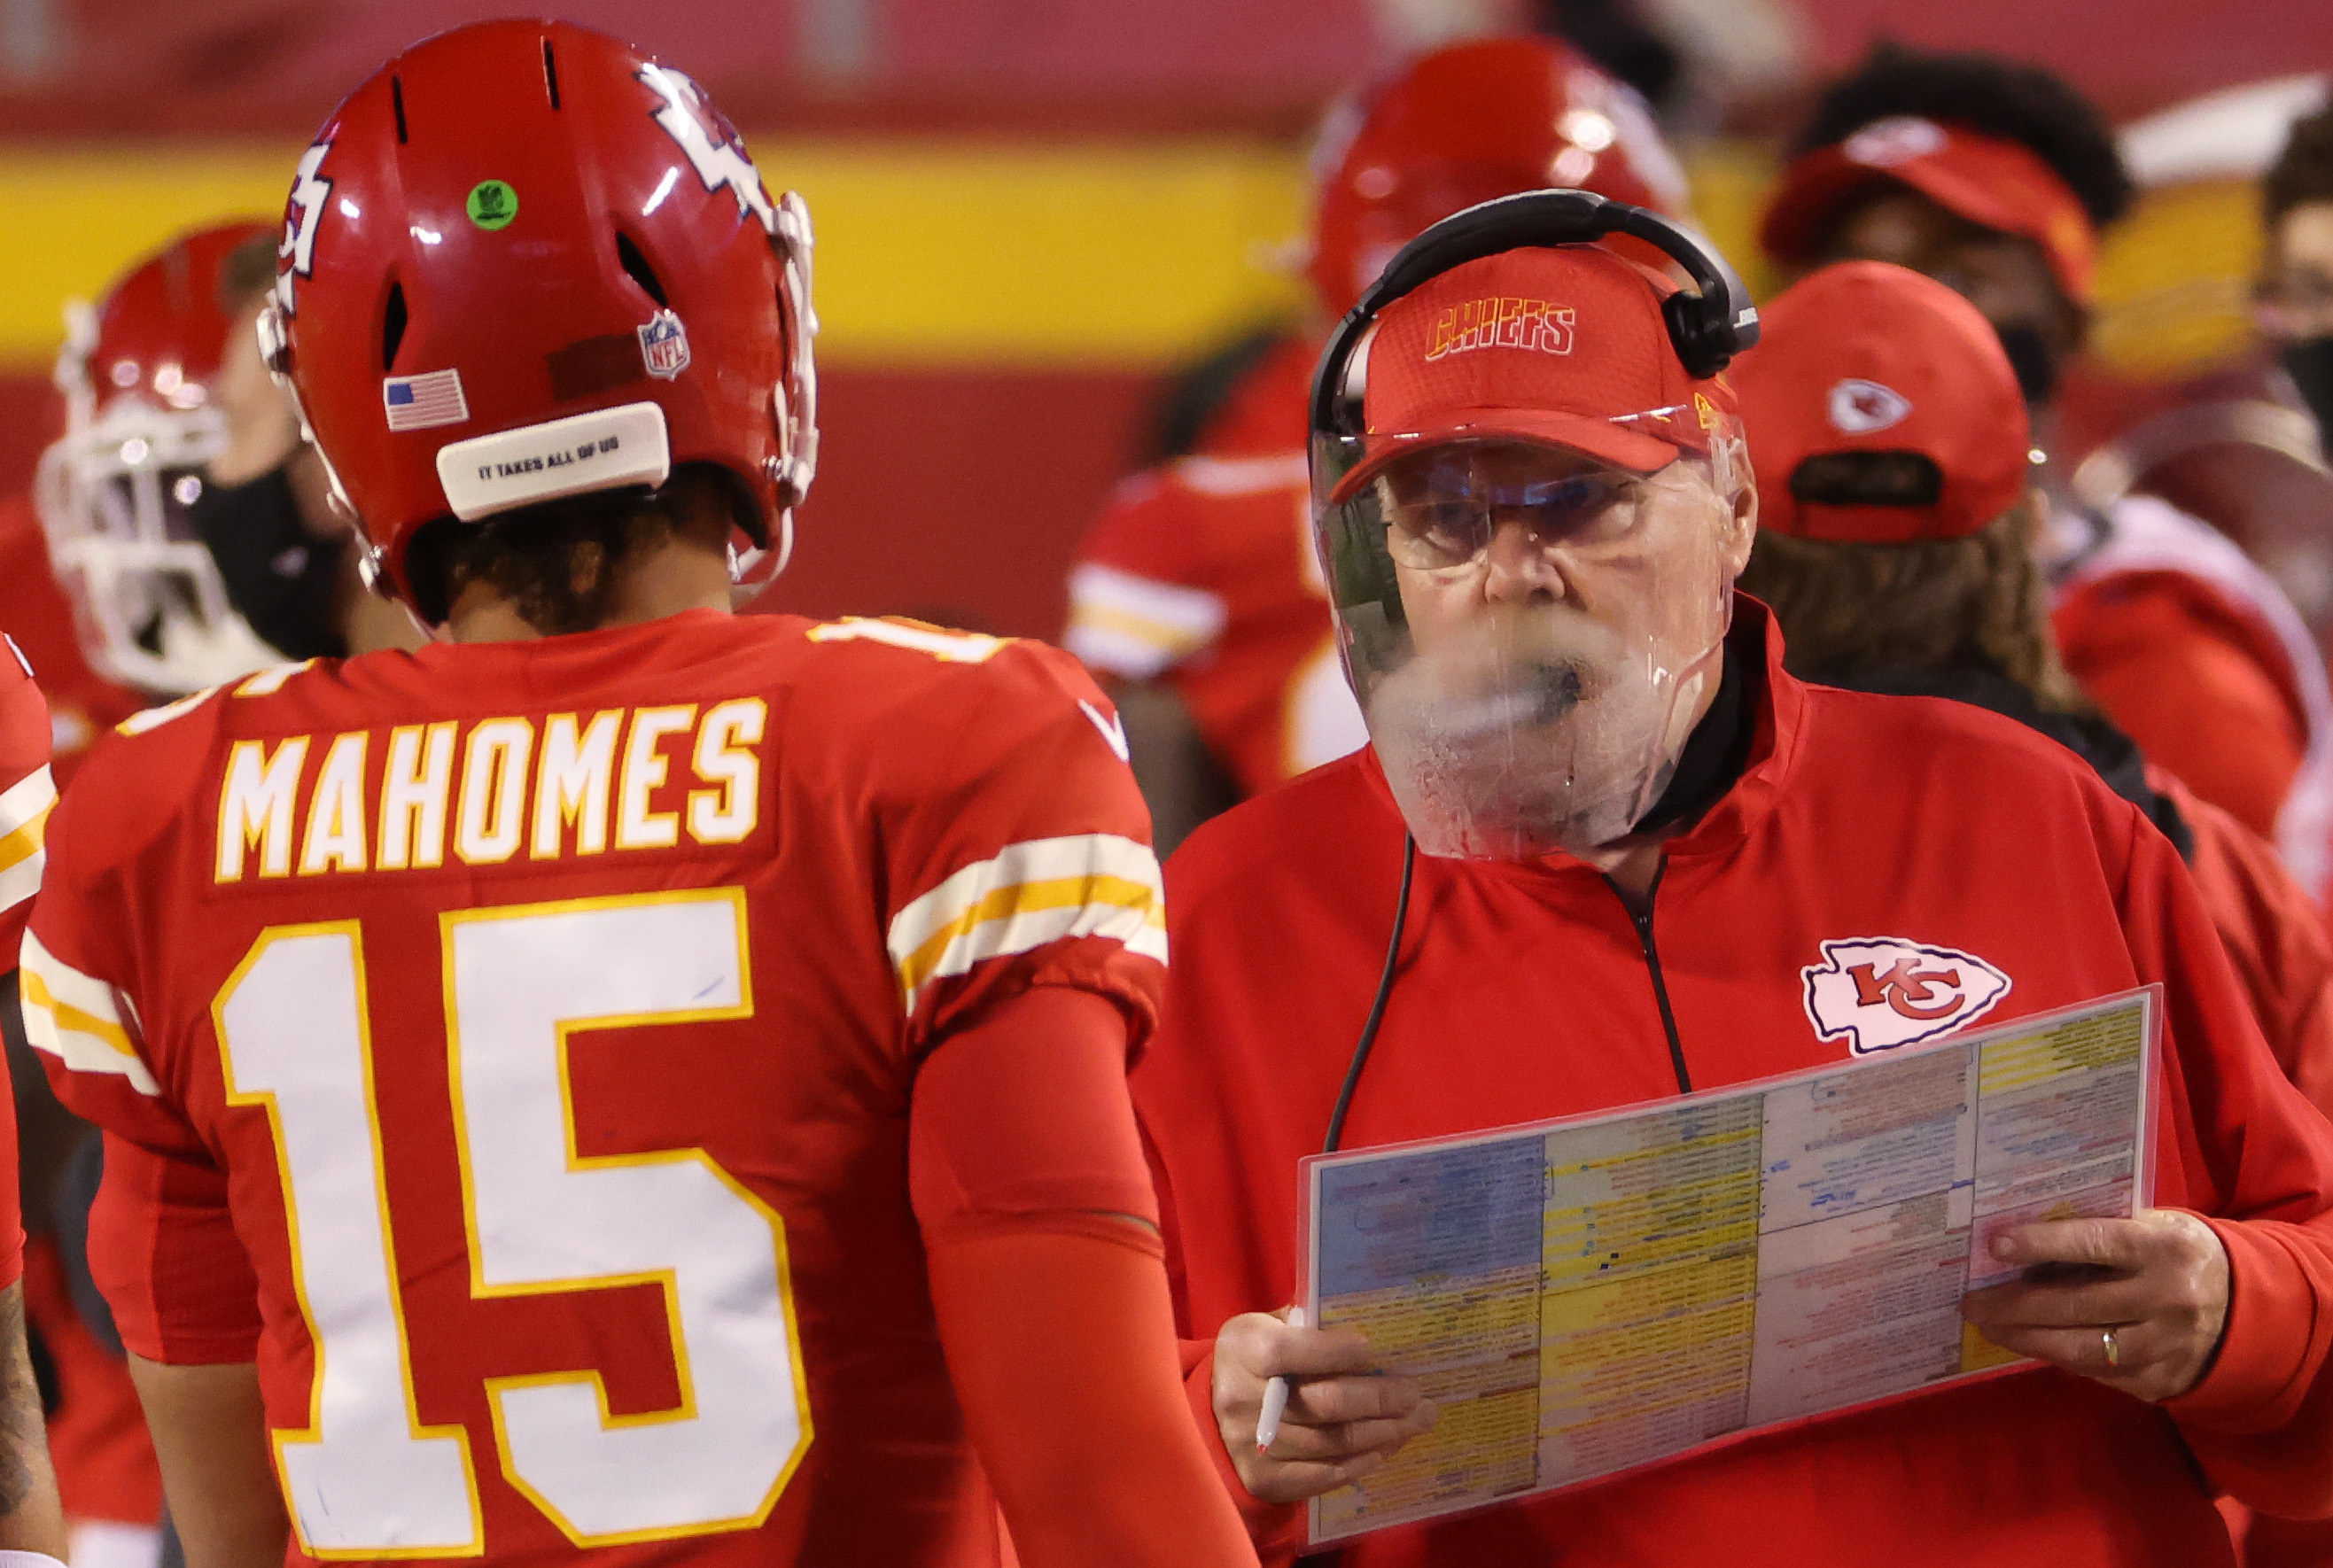 The Kansas City Chiefs may have identified the missing piece of their Super Bowl puzzle.